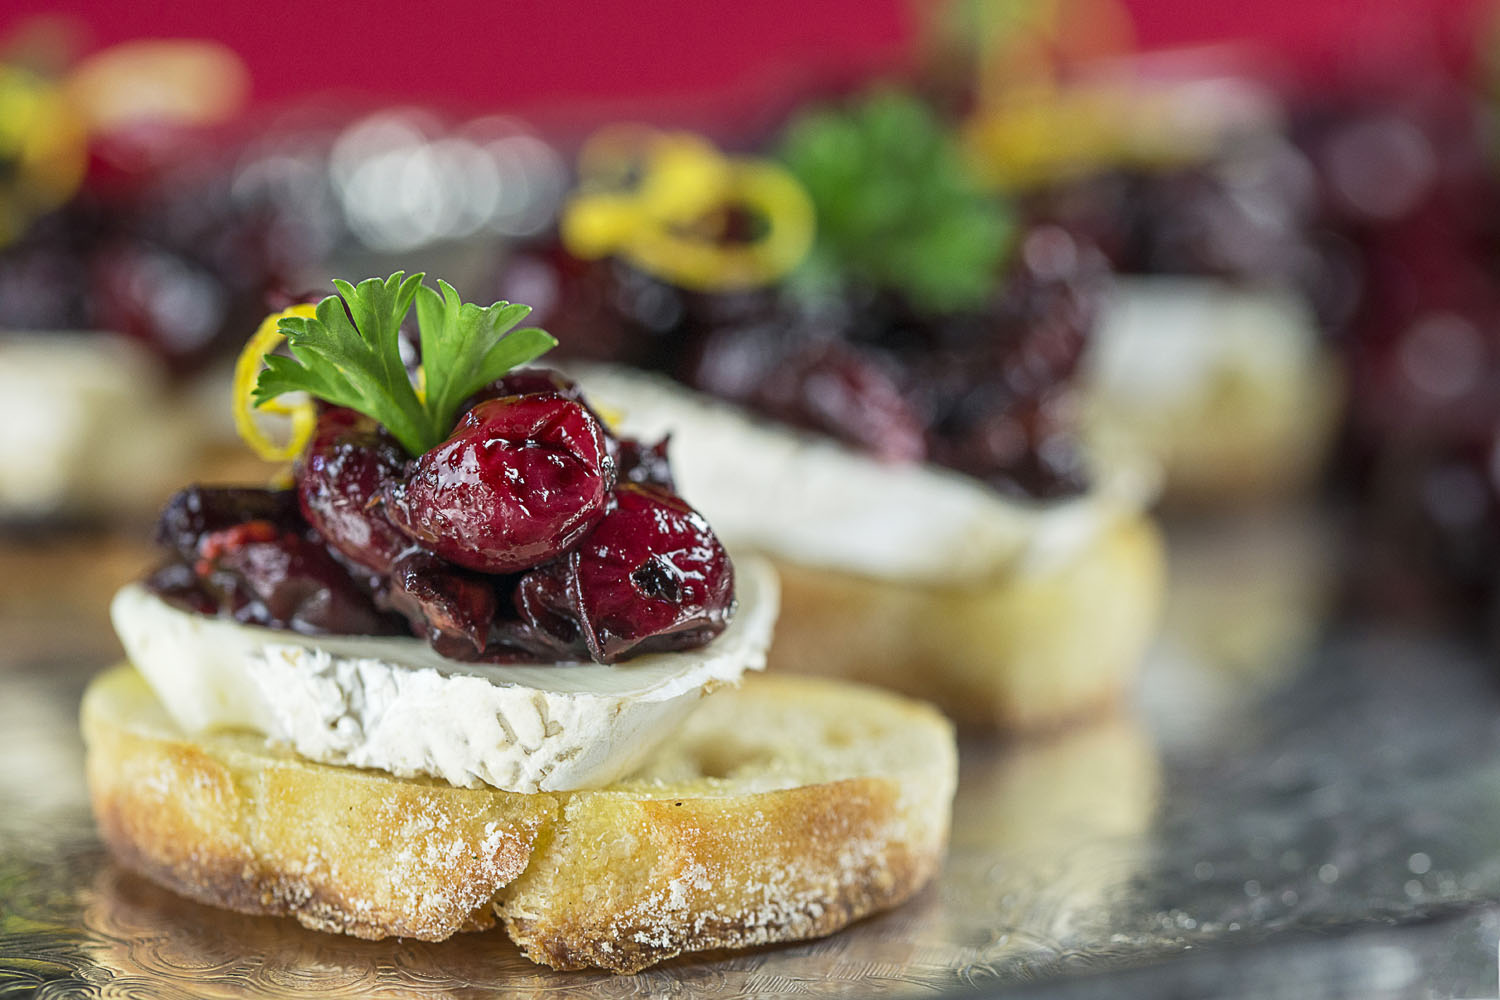 Holiday-schetta, balsamic roasted cranberry, brie